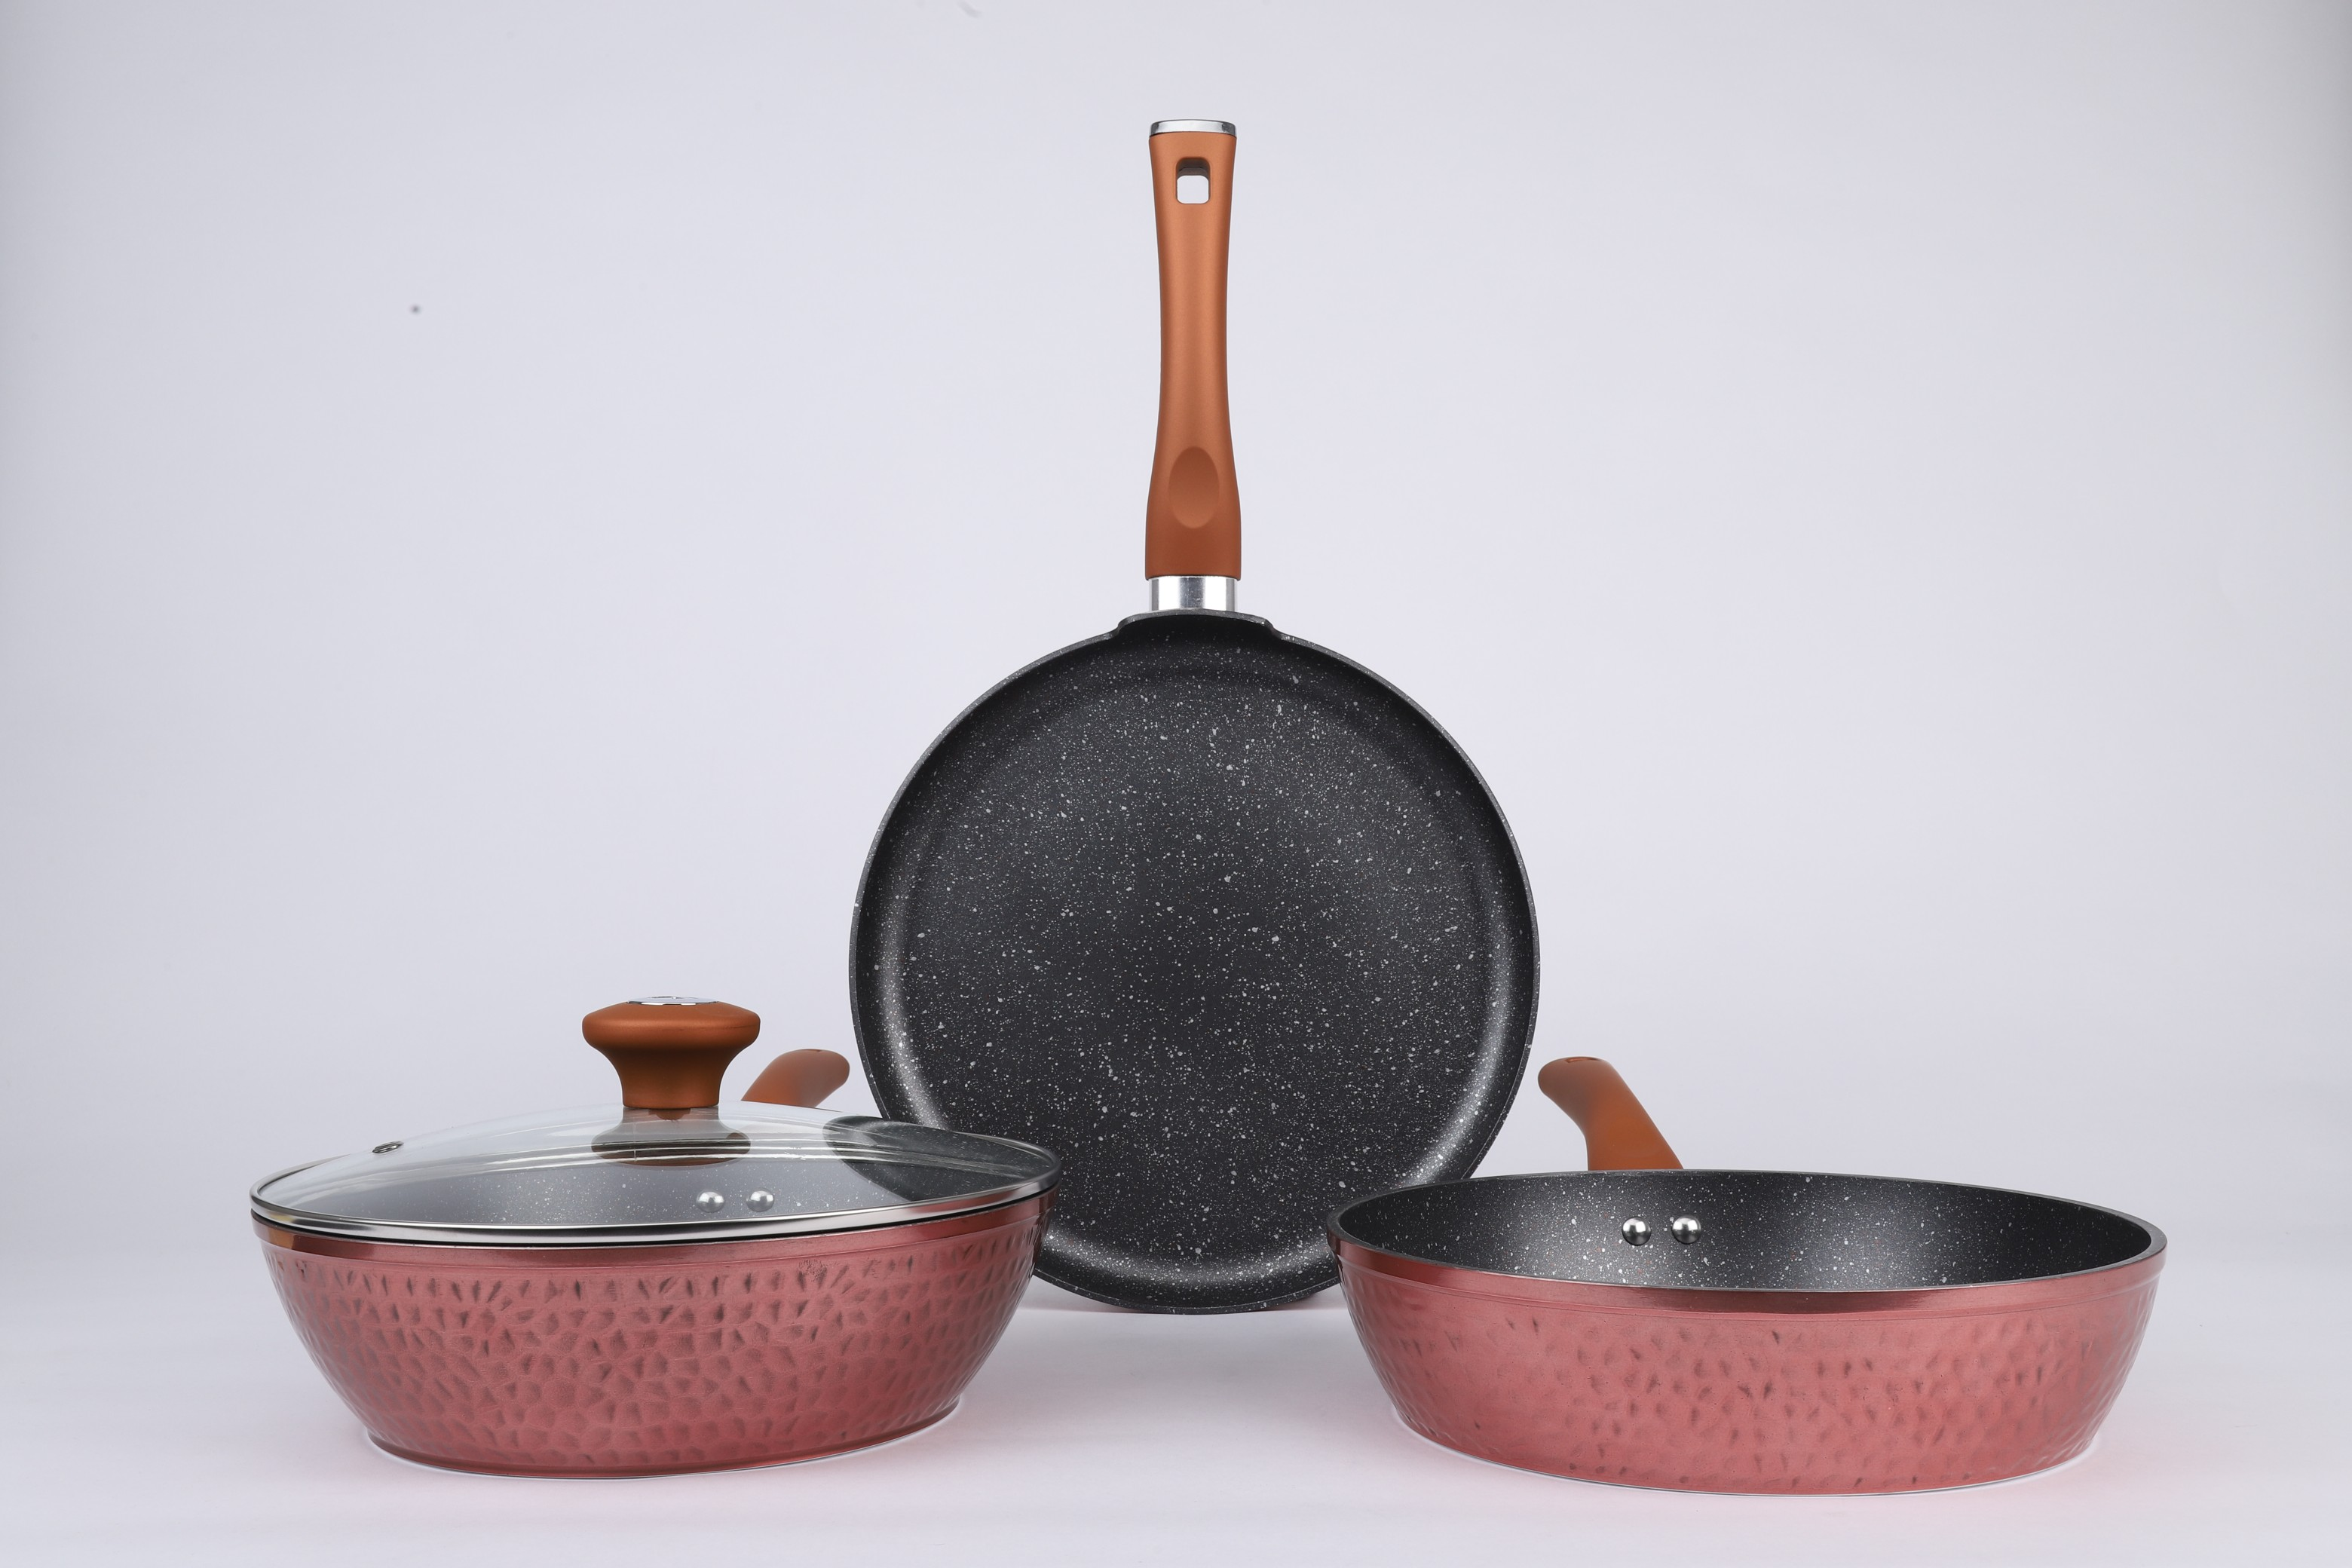 Stainless steel cookware sets in Copper Colour by Bergner